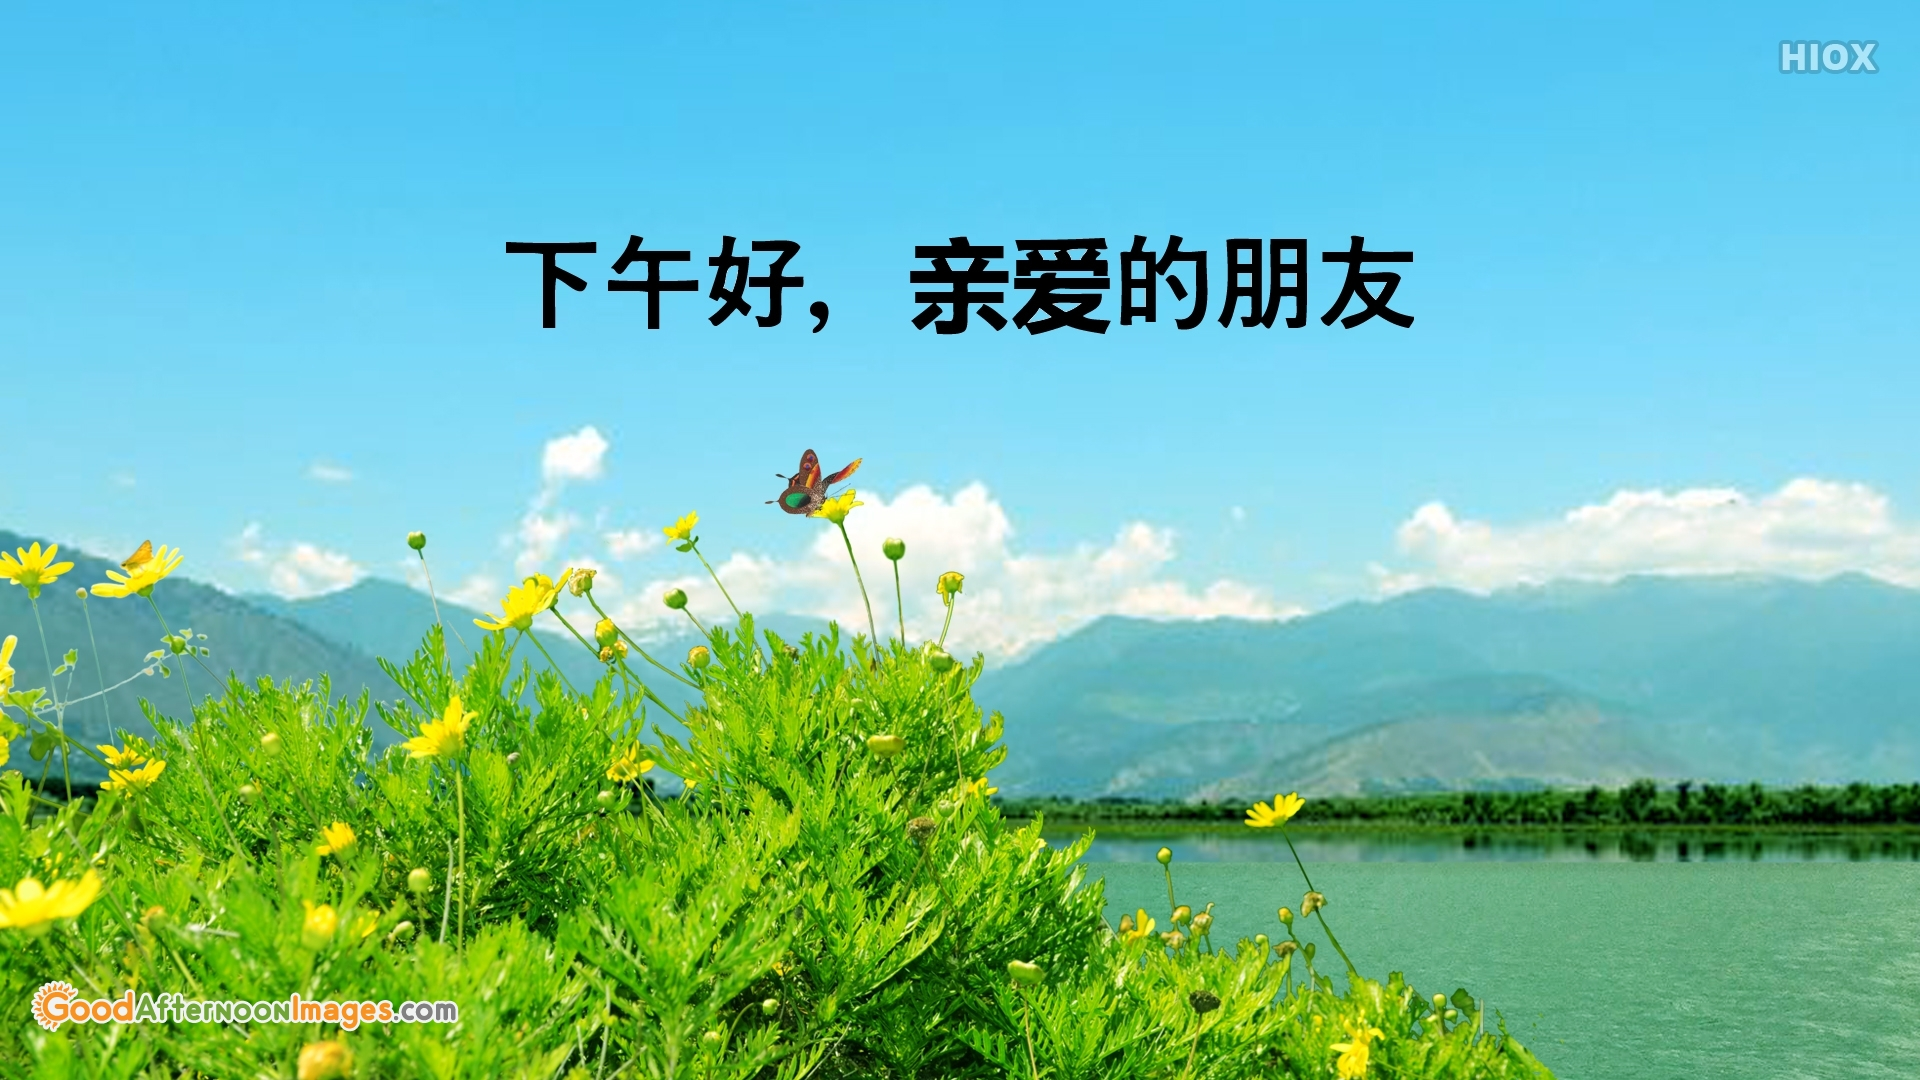 Good Afternoon Wishes In Chinese